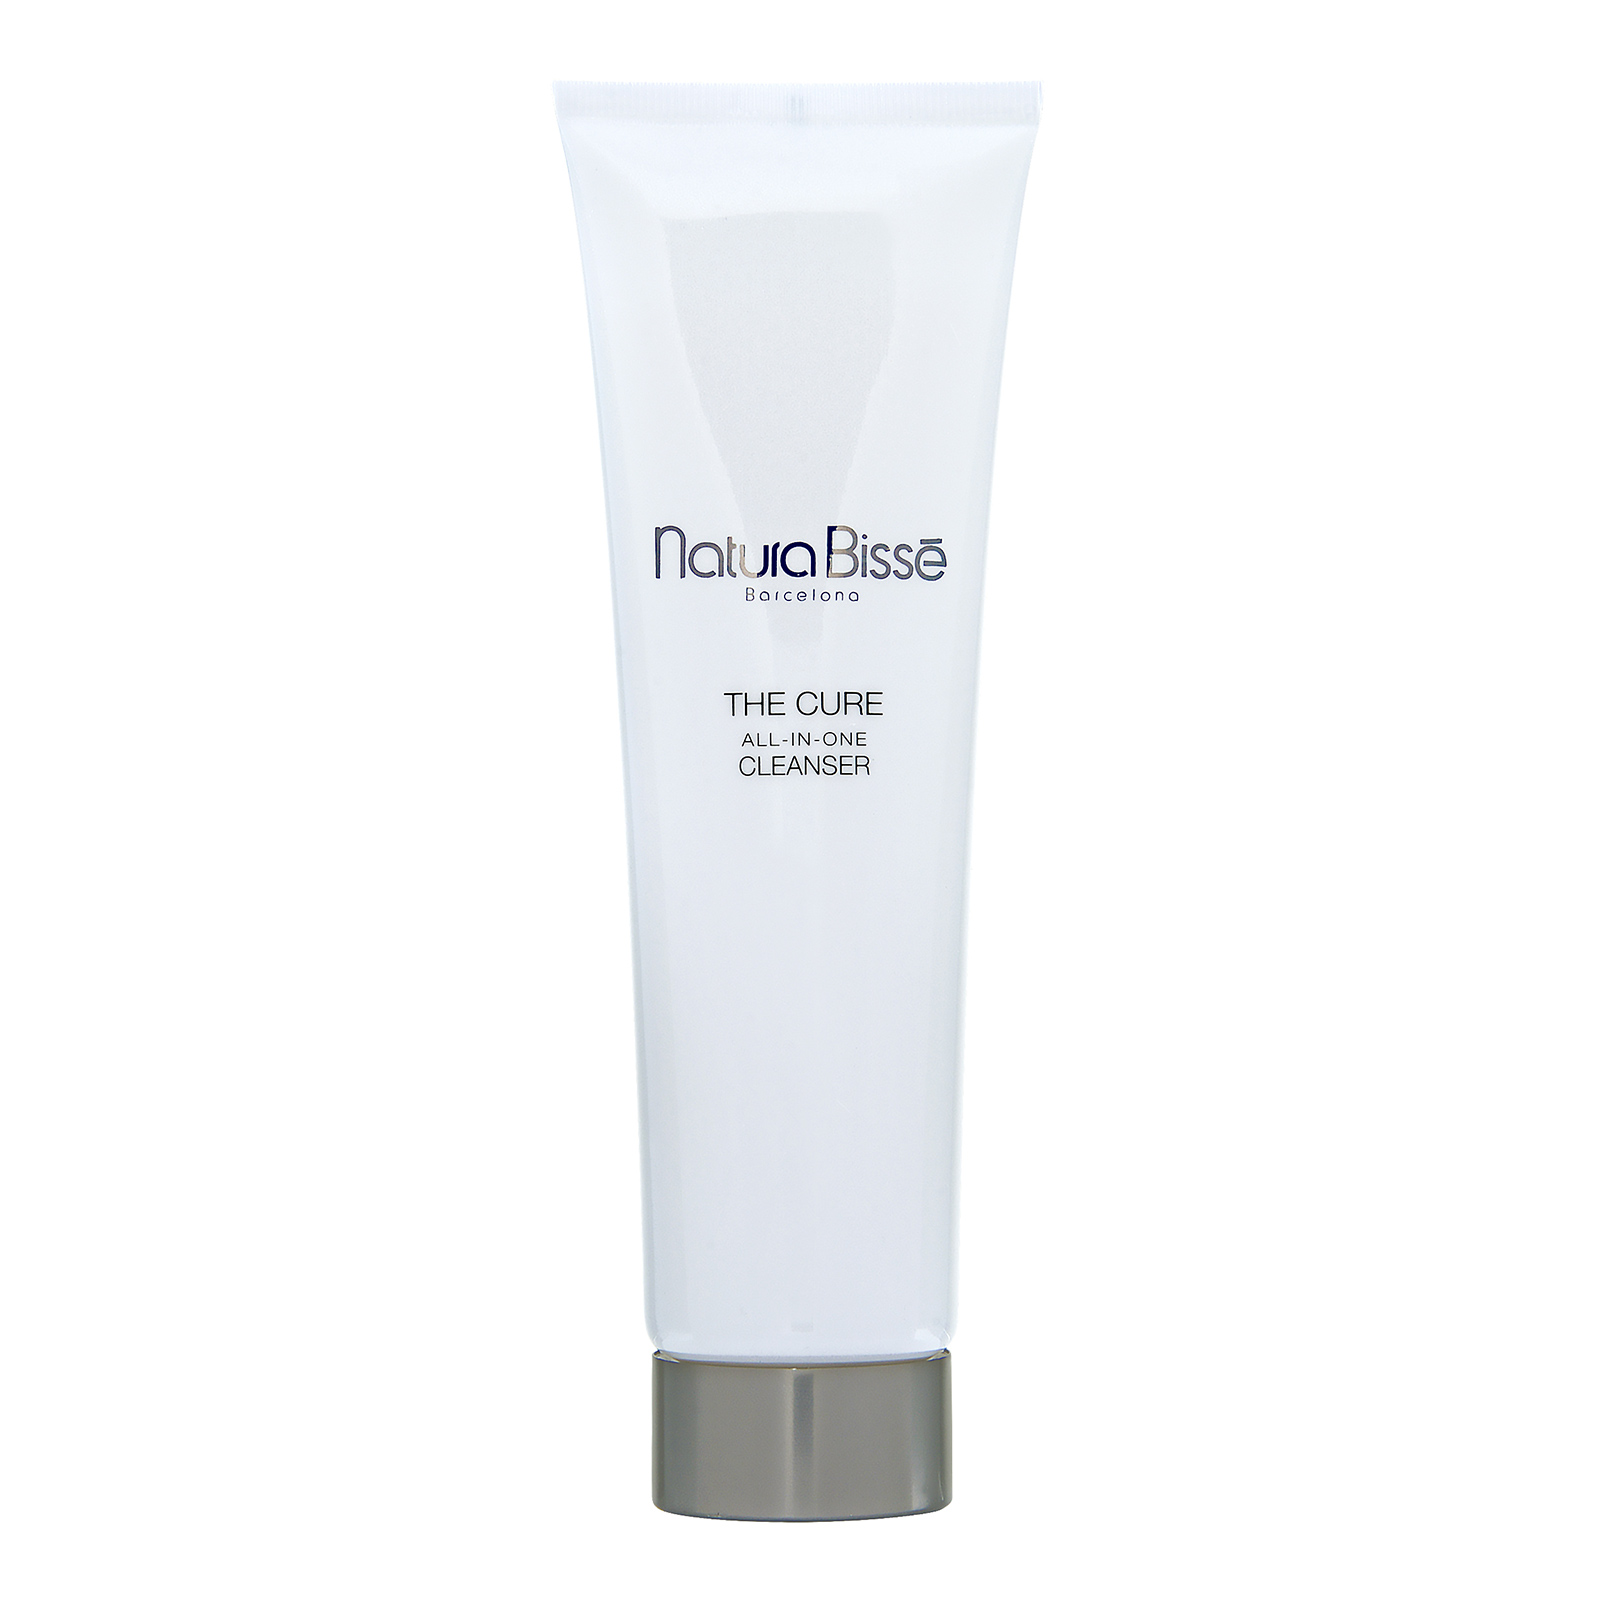 Natura Bisse The Cure All In One Cleanser Restorative Cleansing Cream 150ml,